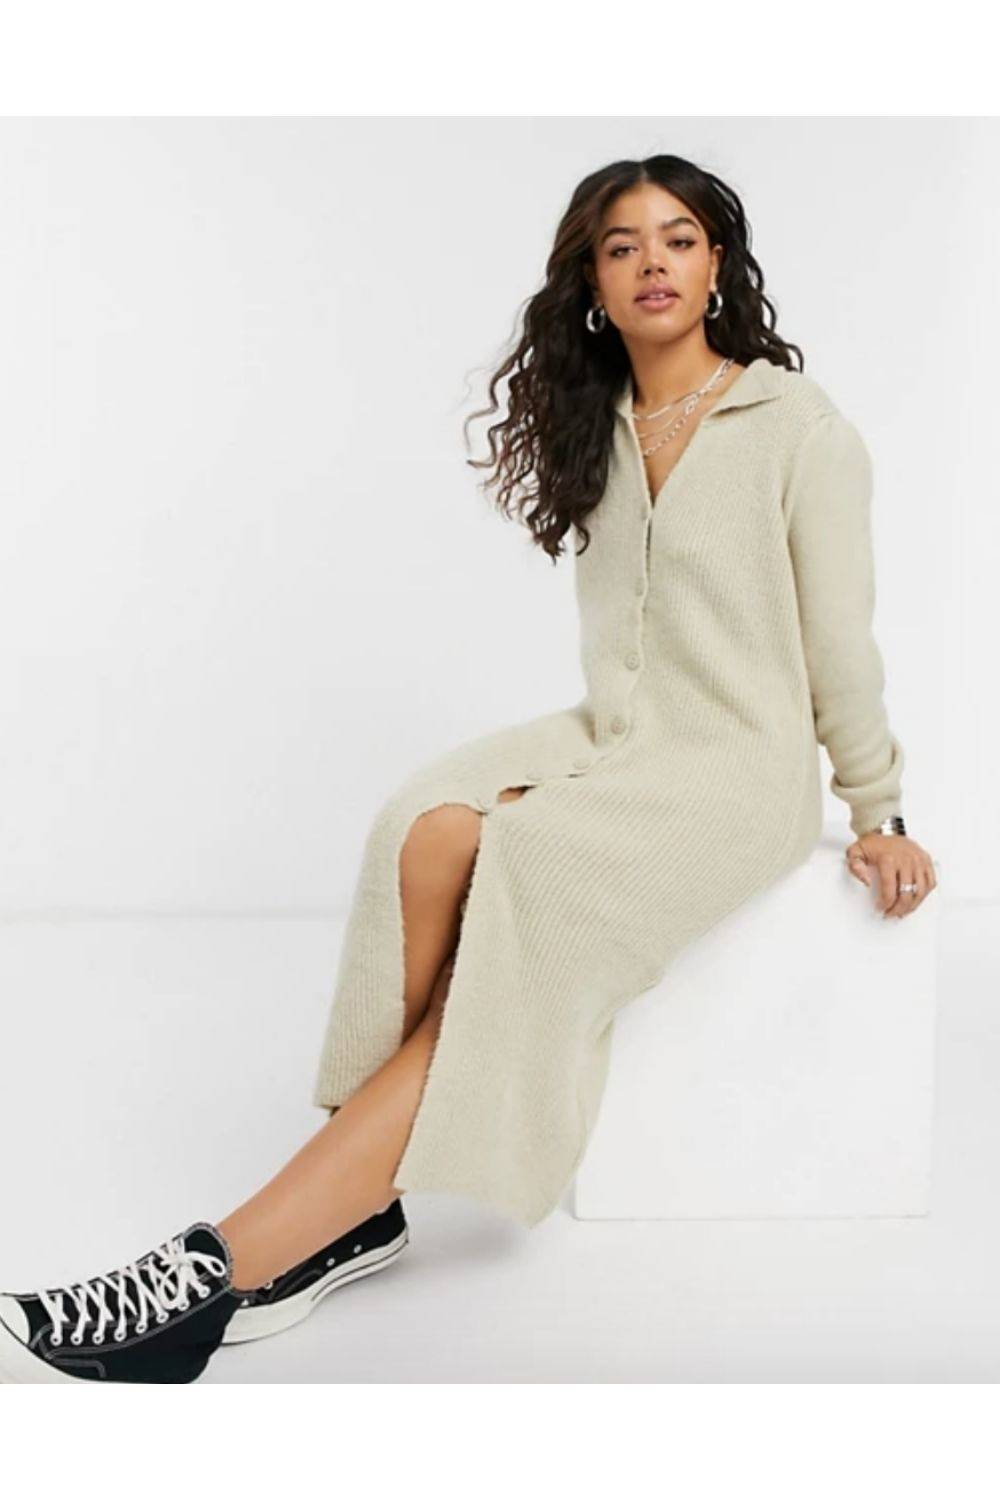 ASOS DESIGN knit dress with collar detail and button front